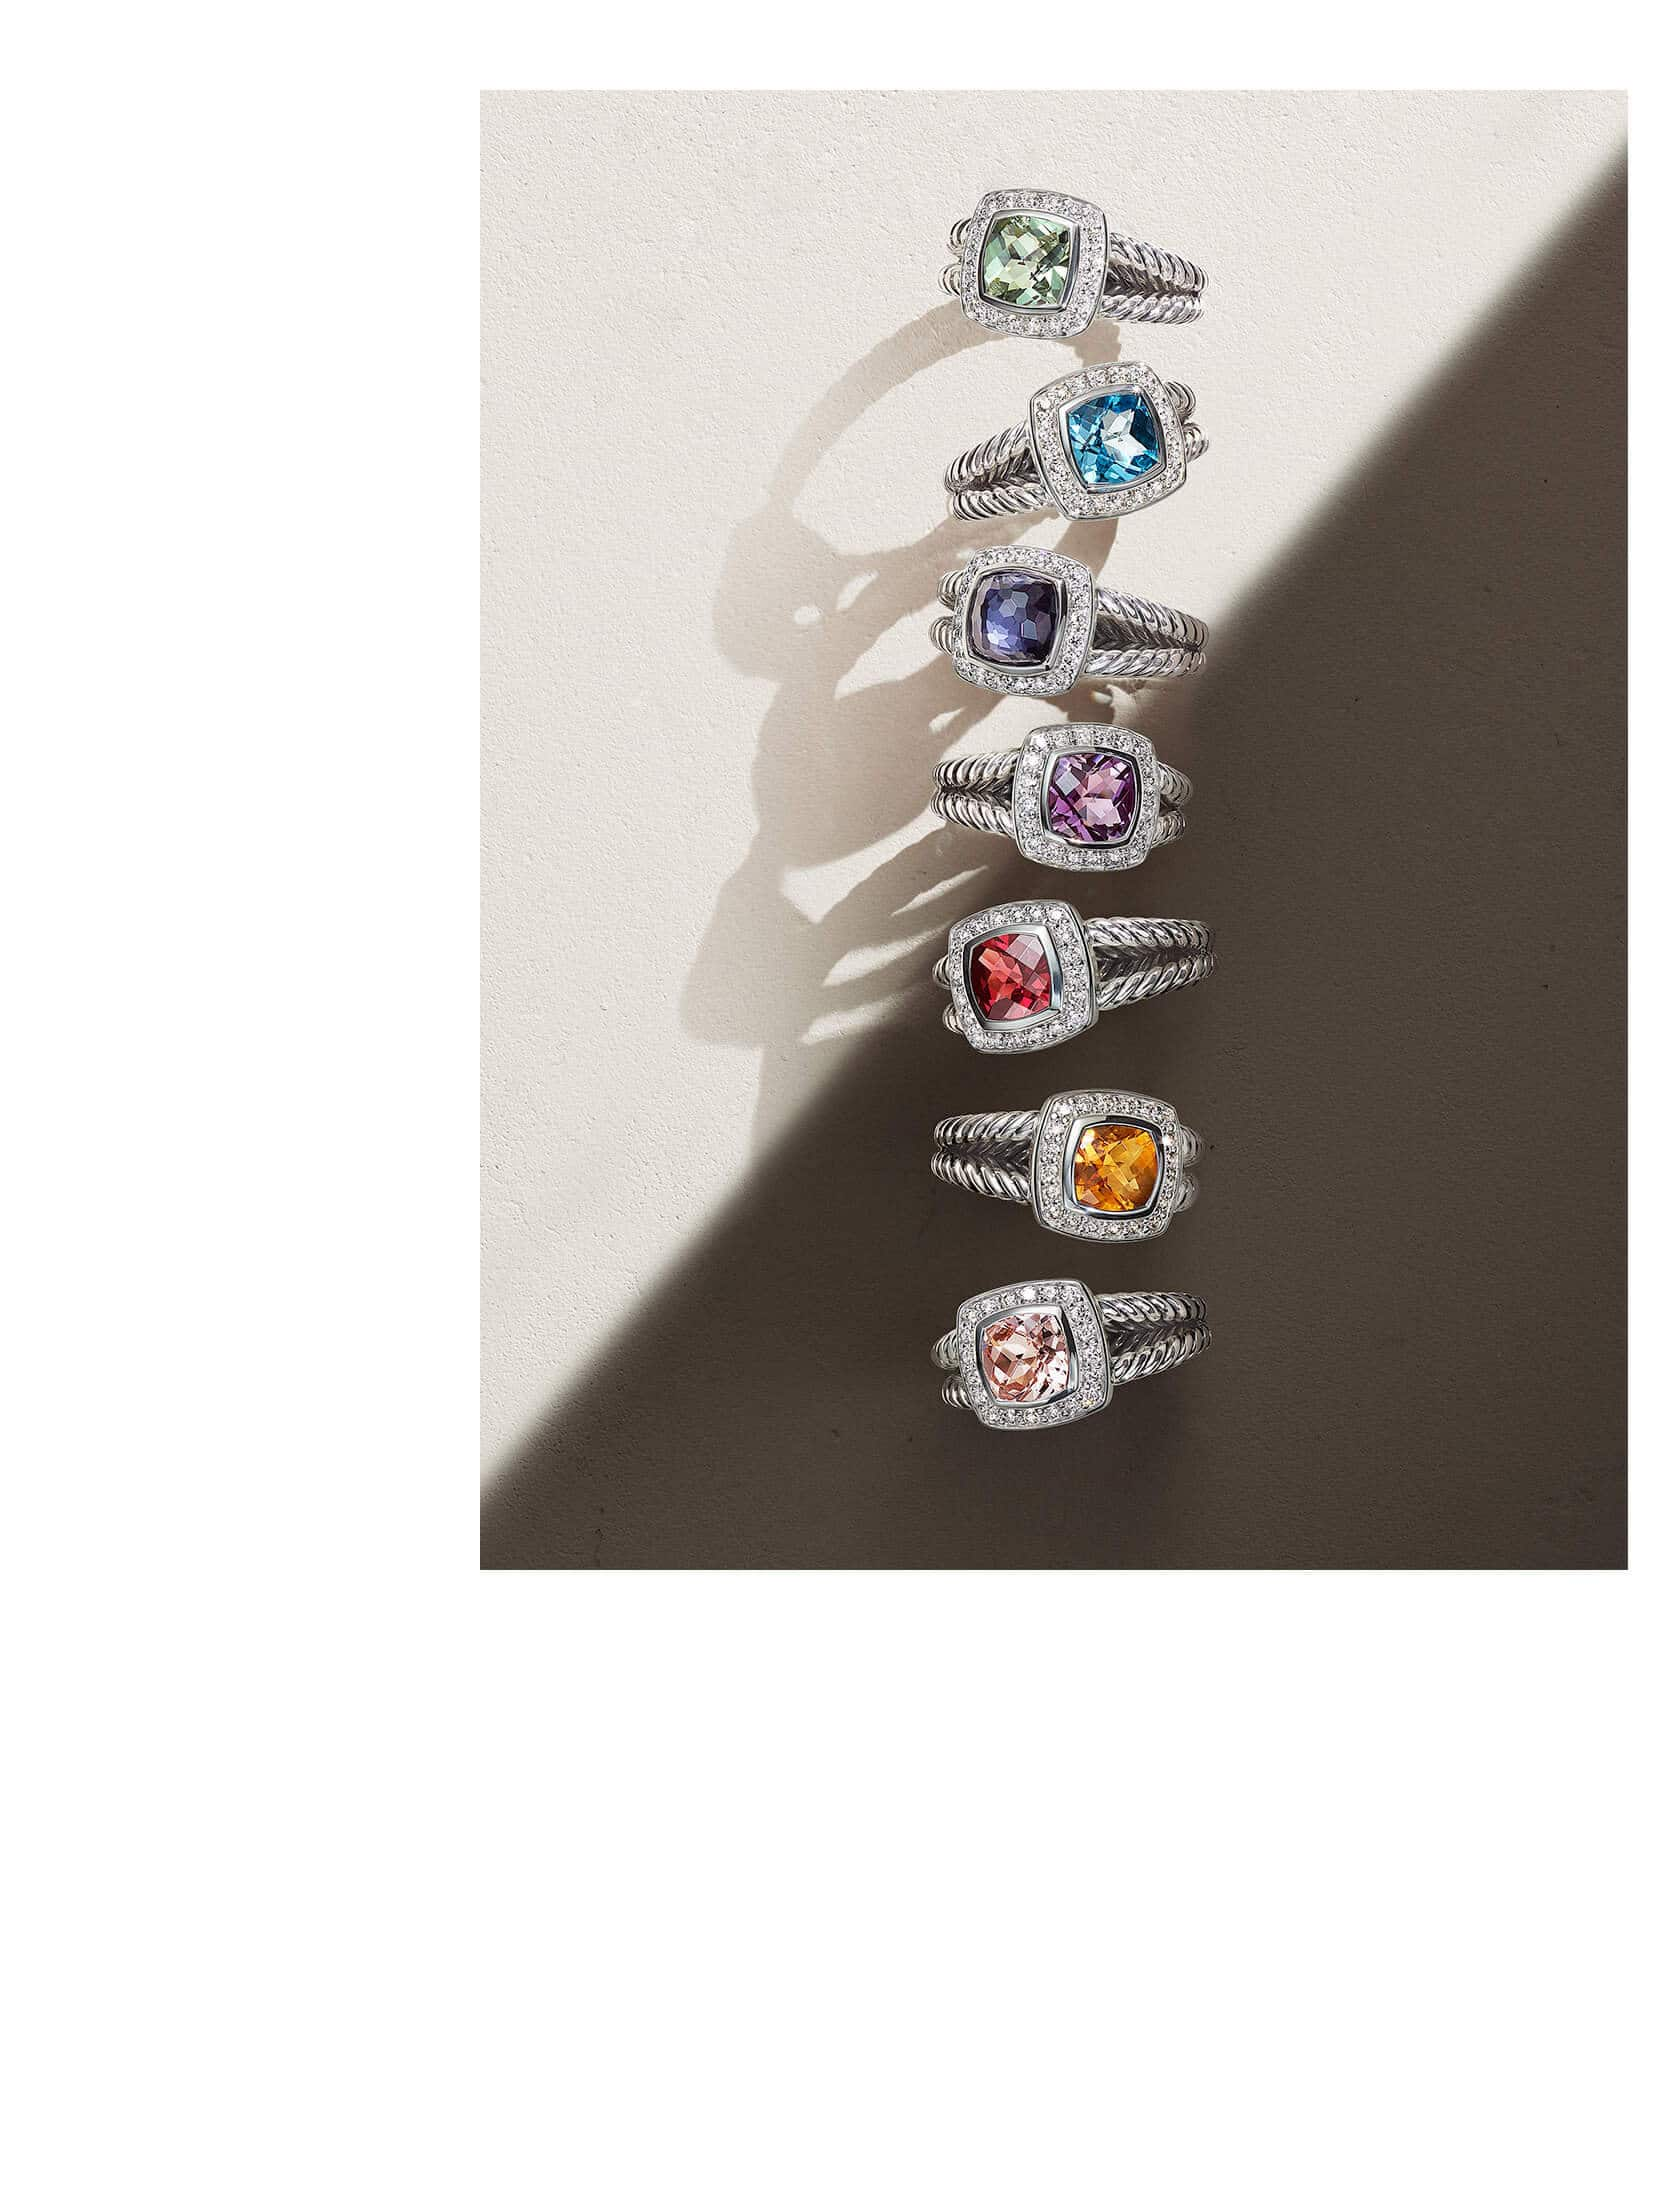 A color photograph shows a vertical row of seven David Yurman Petite Albion rings casting long shadows atop a beige surface cut in half by shadow and light. Each ring crafted from sterling silver with pavé white diamonds and prasiolite, blue topaz, black orchid, amethyst, garnet, citrine or morganite center stones.